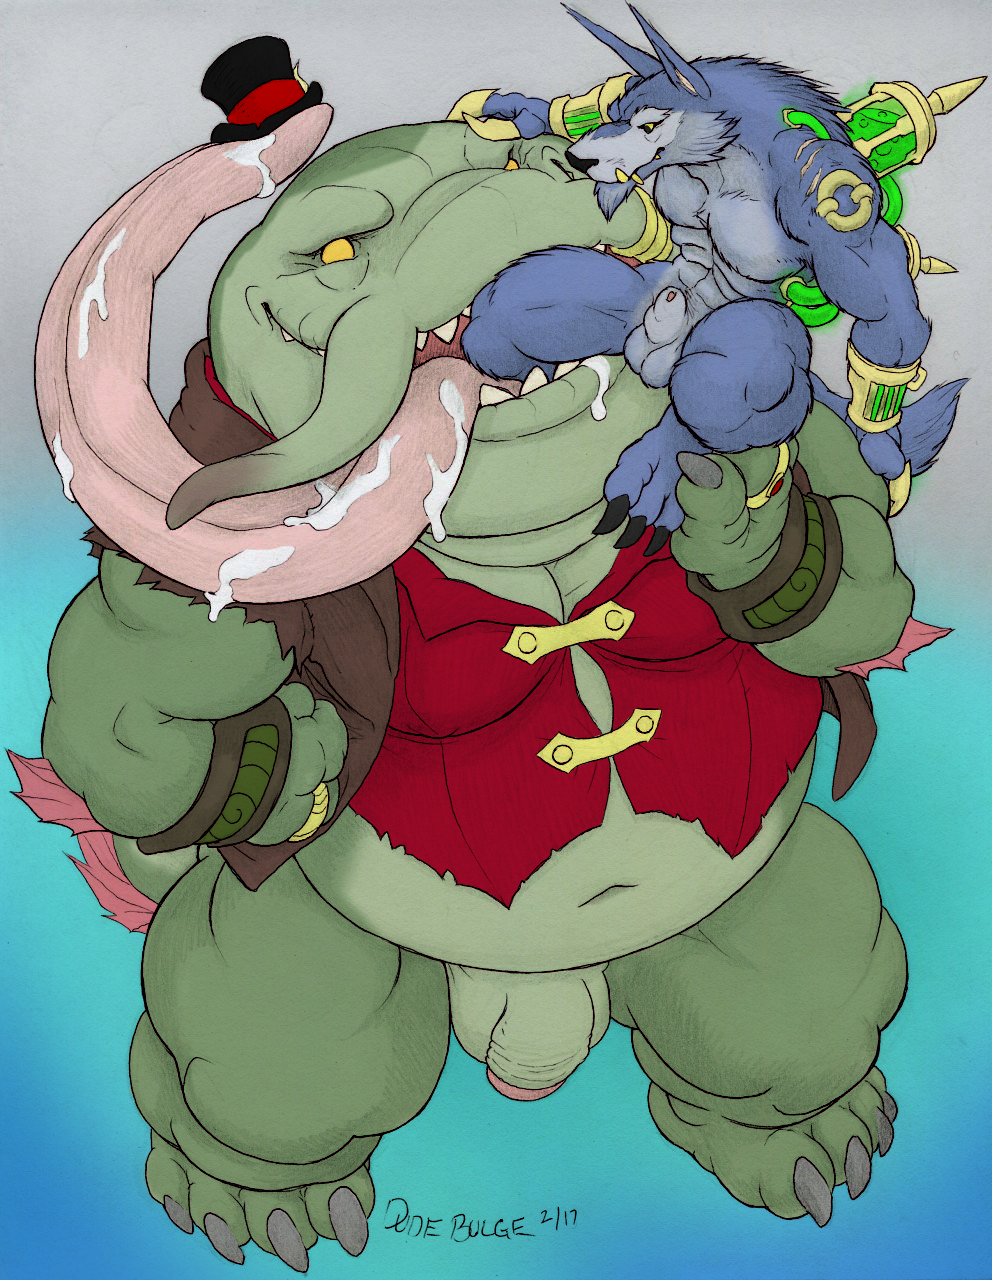 frog tahm kench a is Con-quest! poke-con